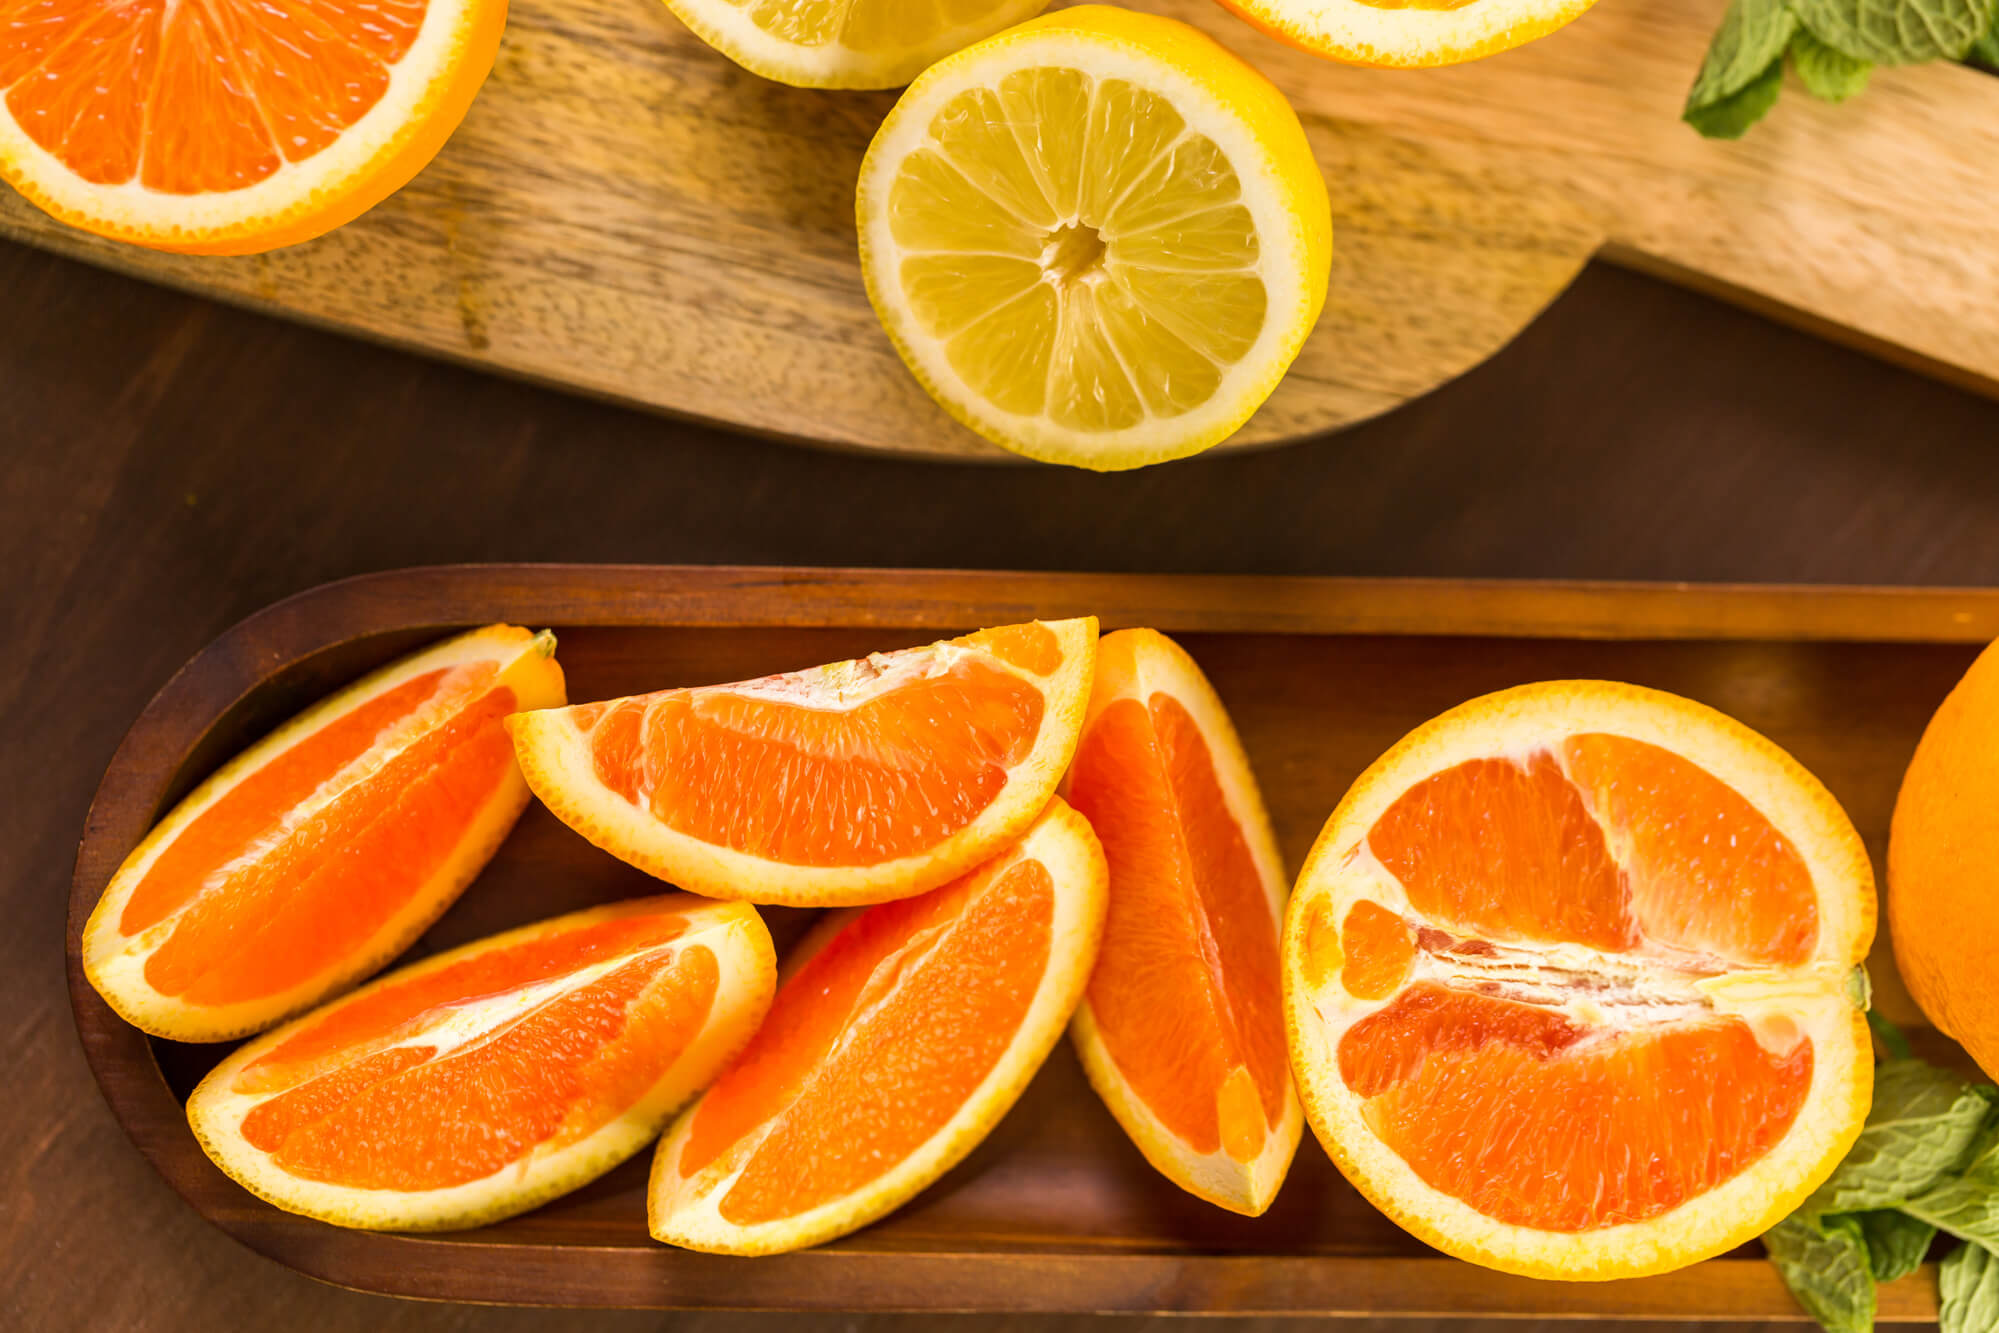 Health benefits of eating citrus